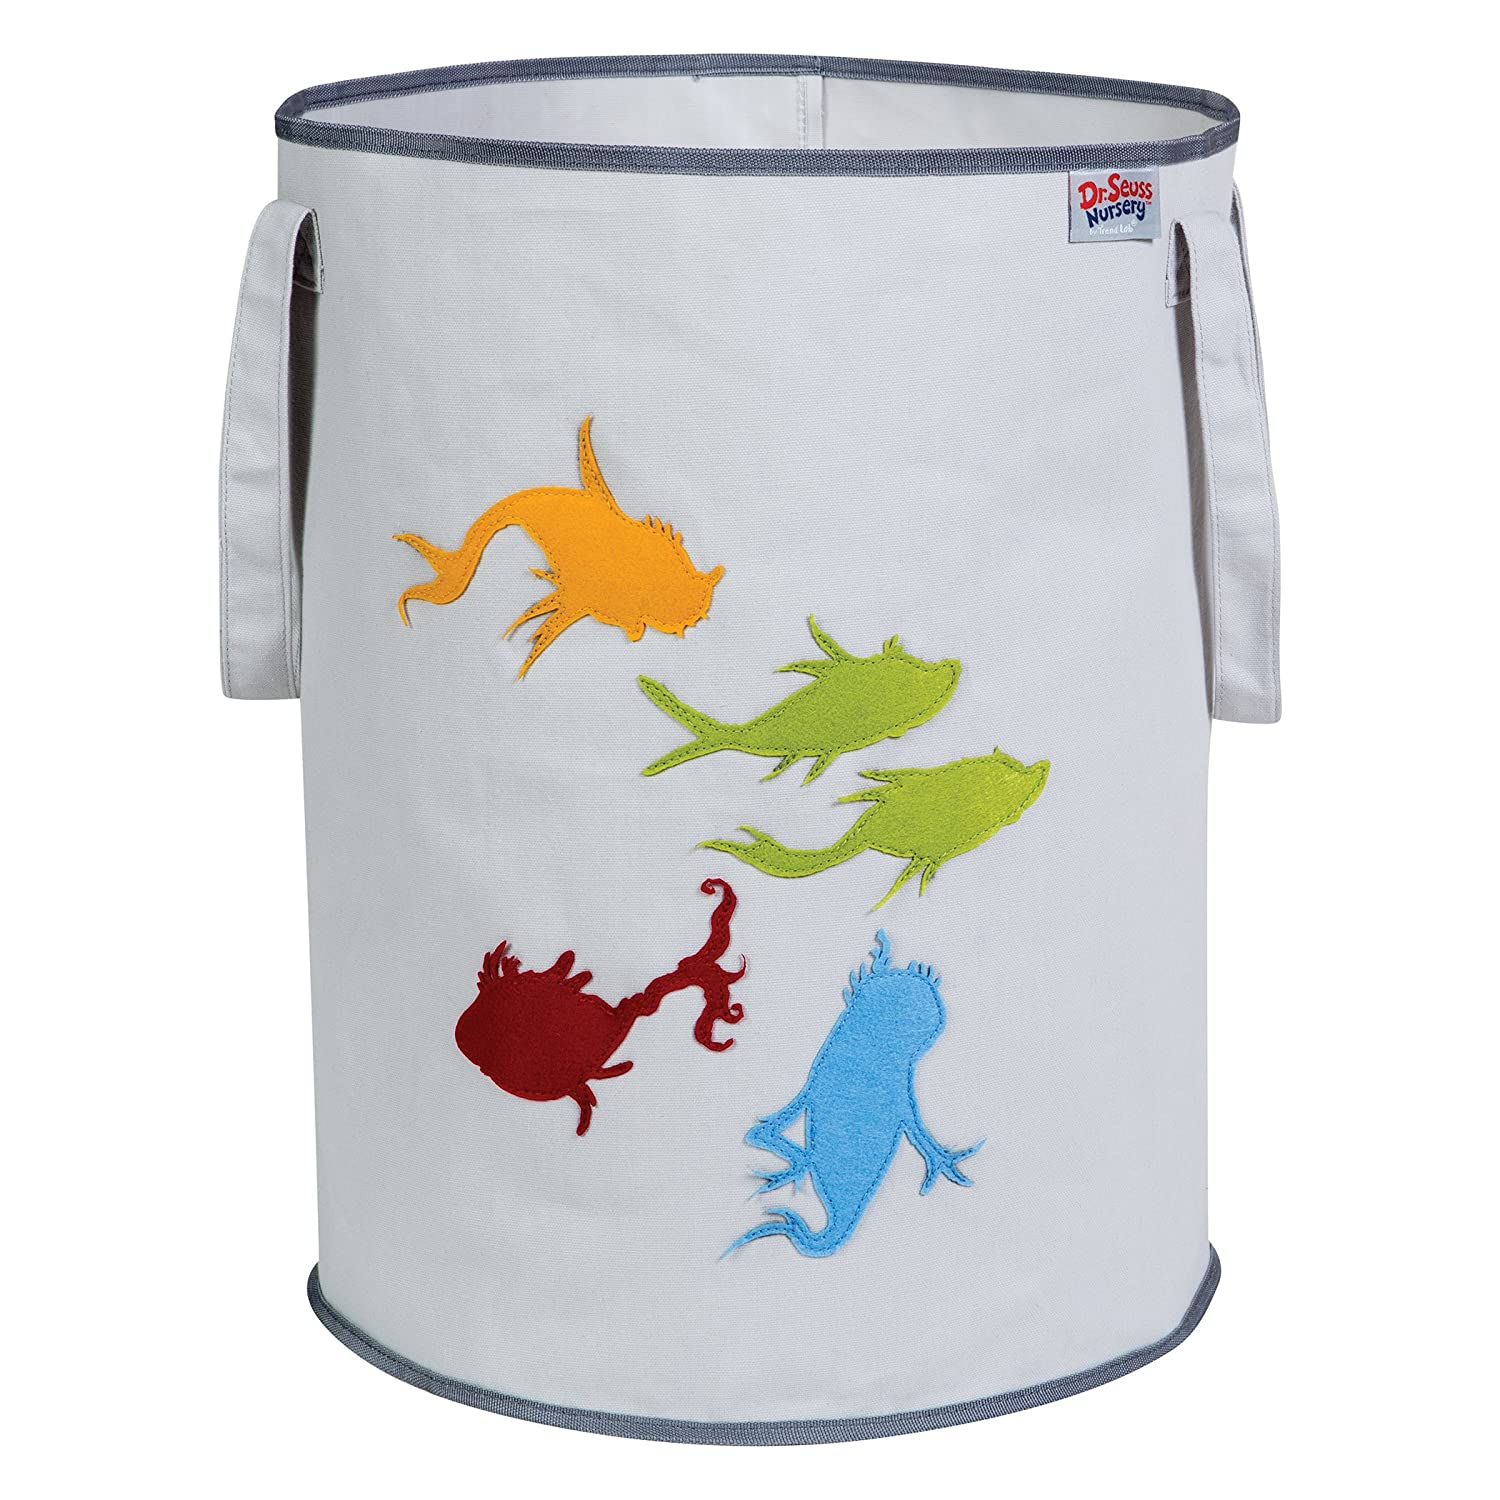 Trend Lab Dr. Seuss Fish Storage Tote, Yellow/Green/Red/Blue/Gray 30604